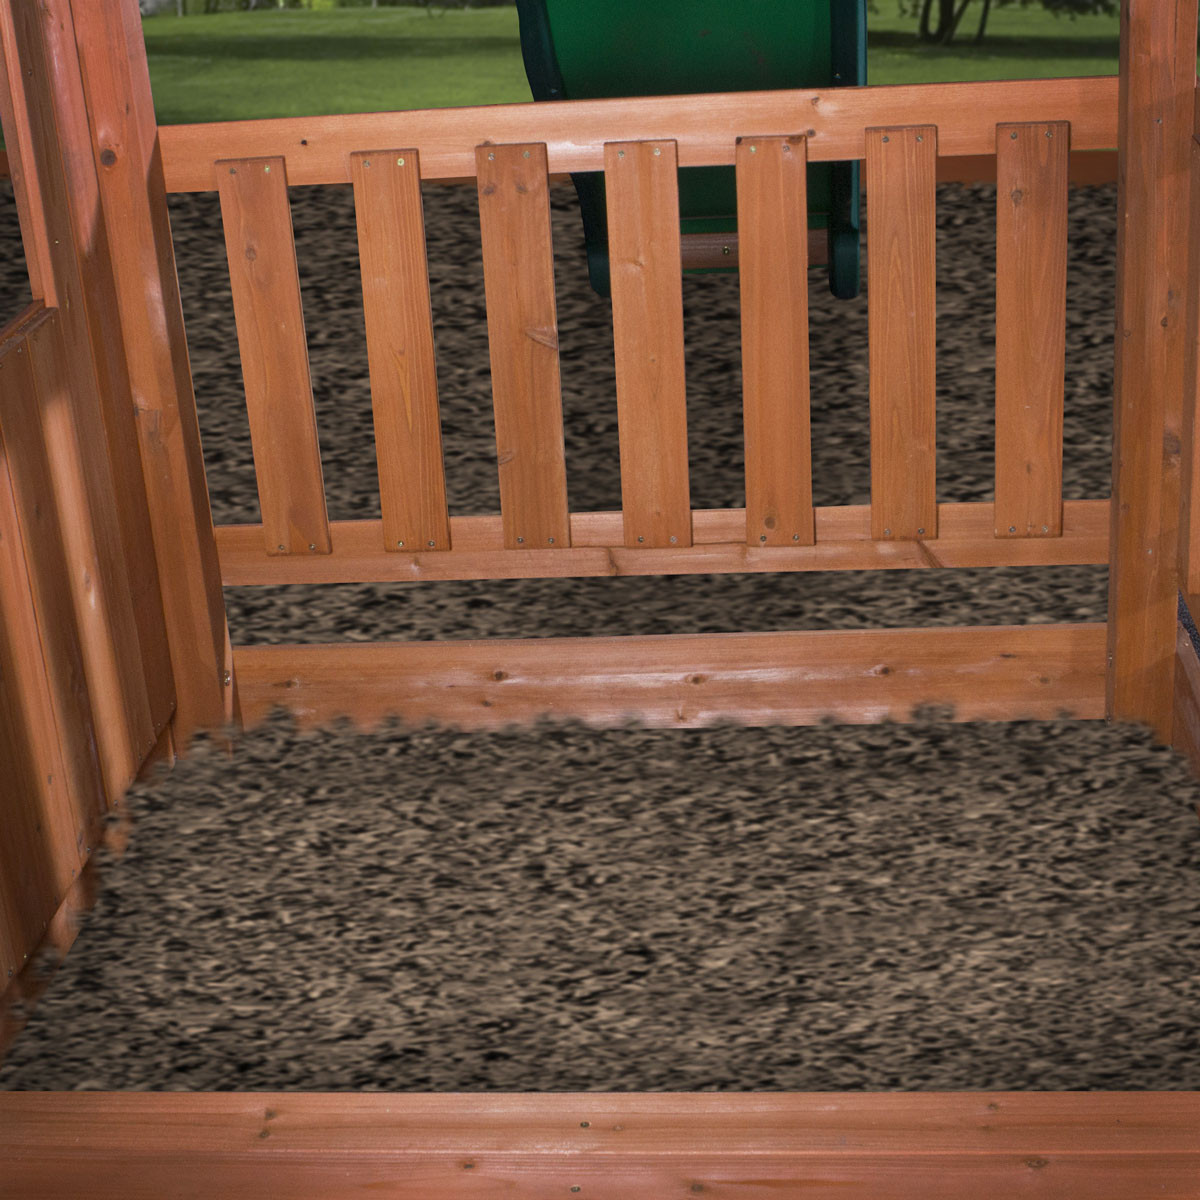 Woodridge II Wooden Swing Set (6815com)